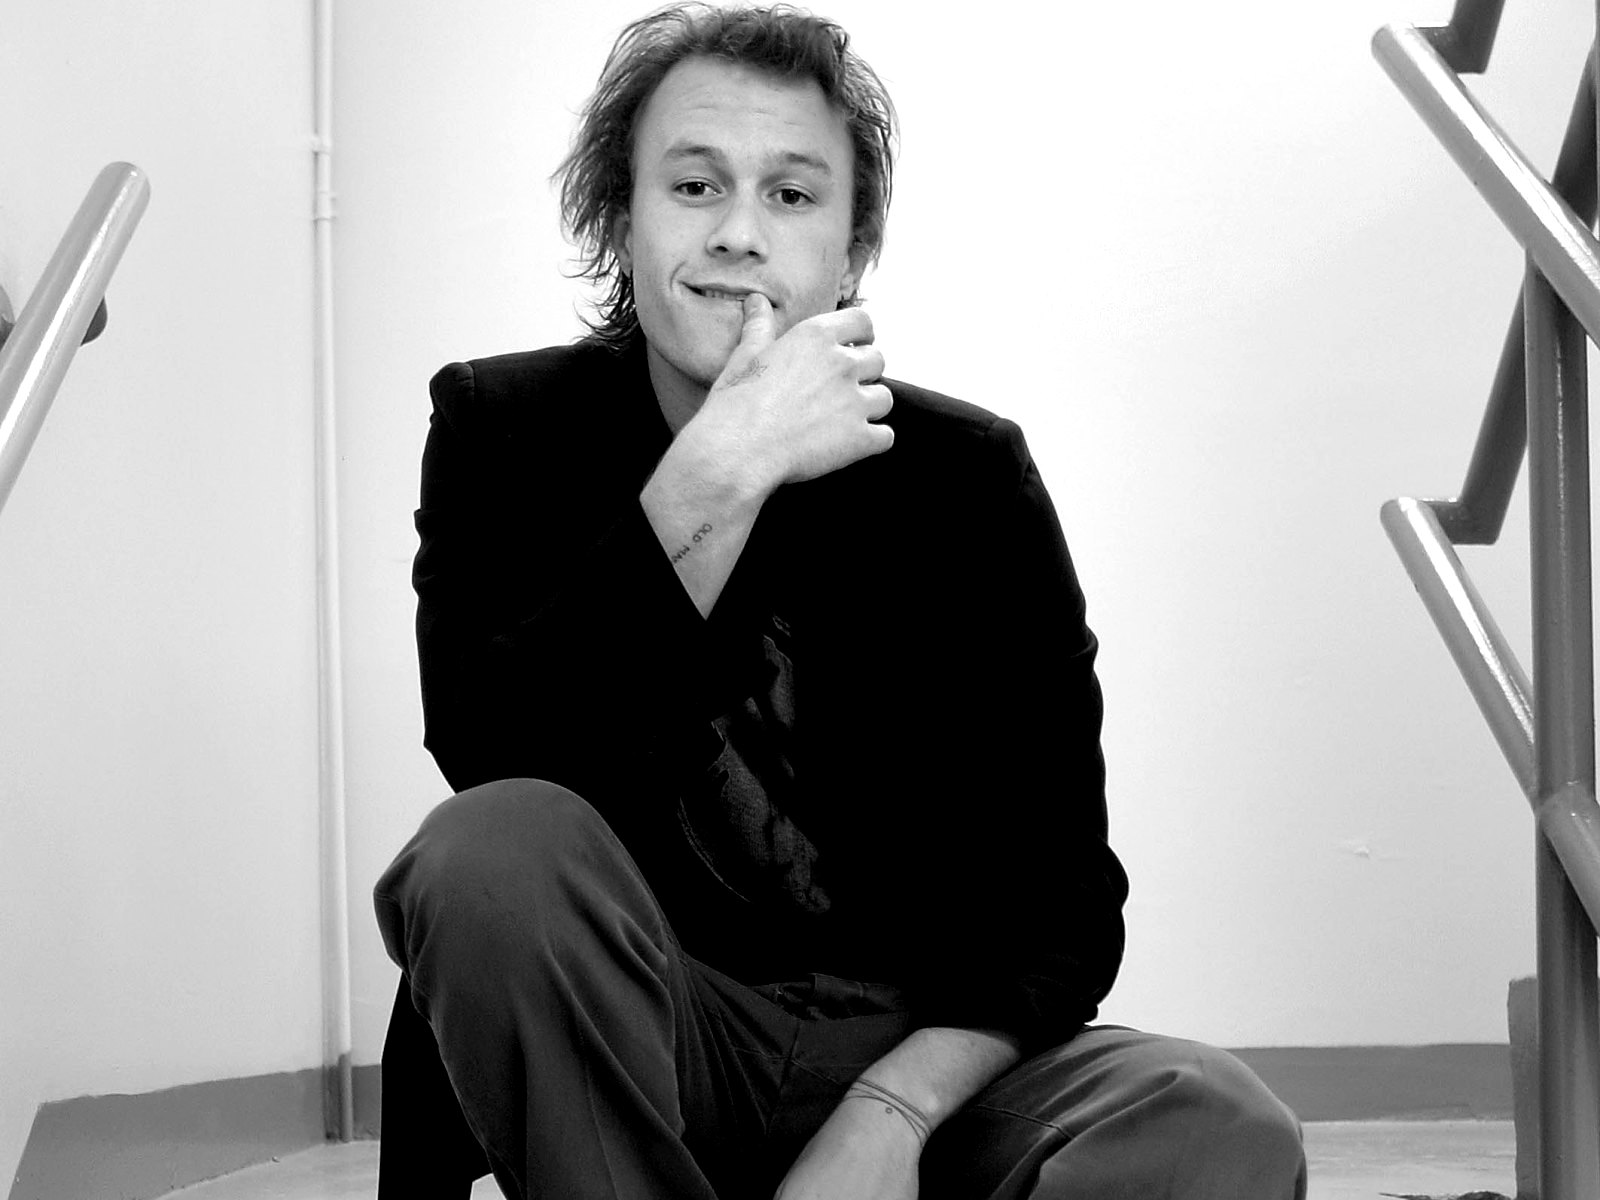 Heath Ledger Wallpapers High Resolution and Quality Download 1600x1200